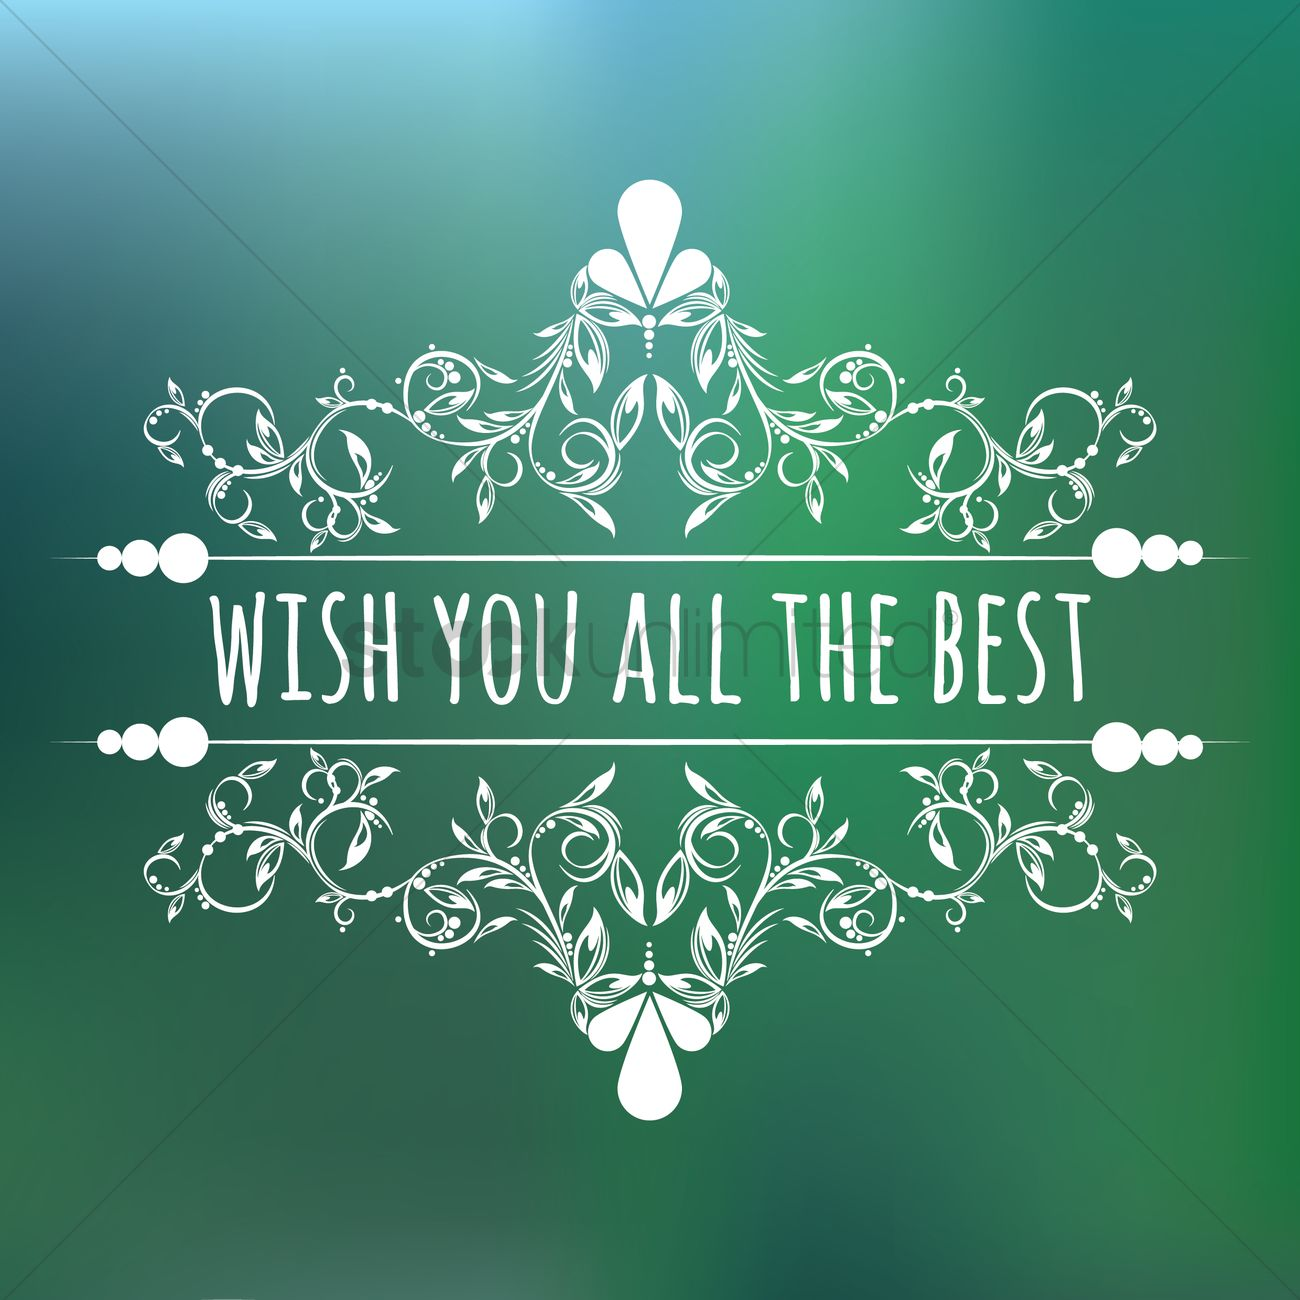 Free Wish You All The Best Vector Graphic